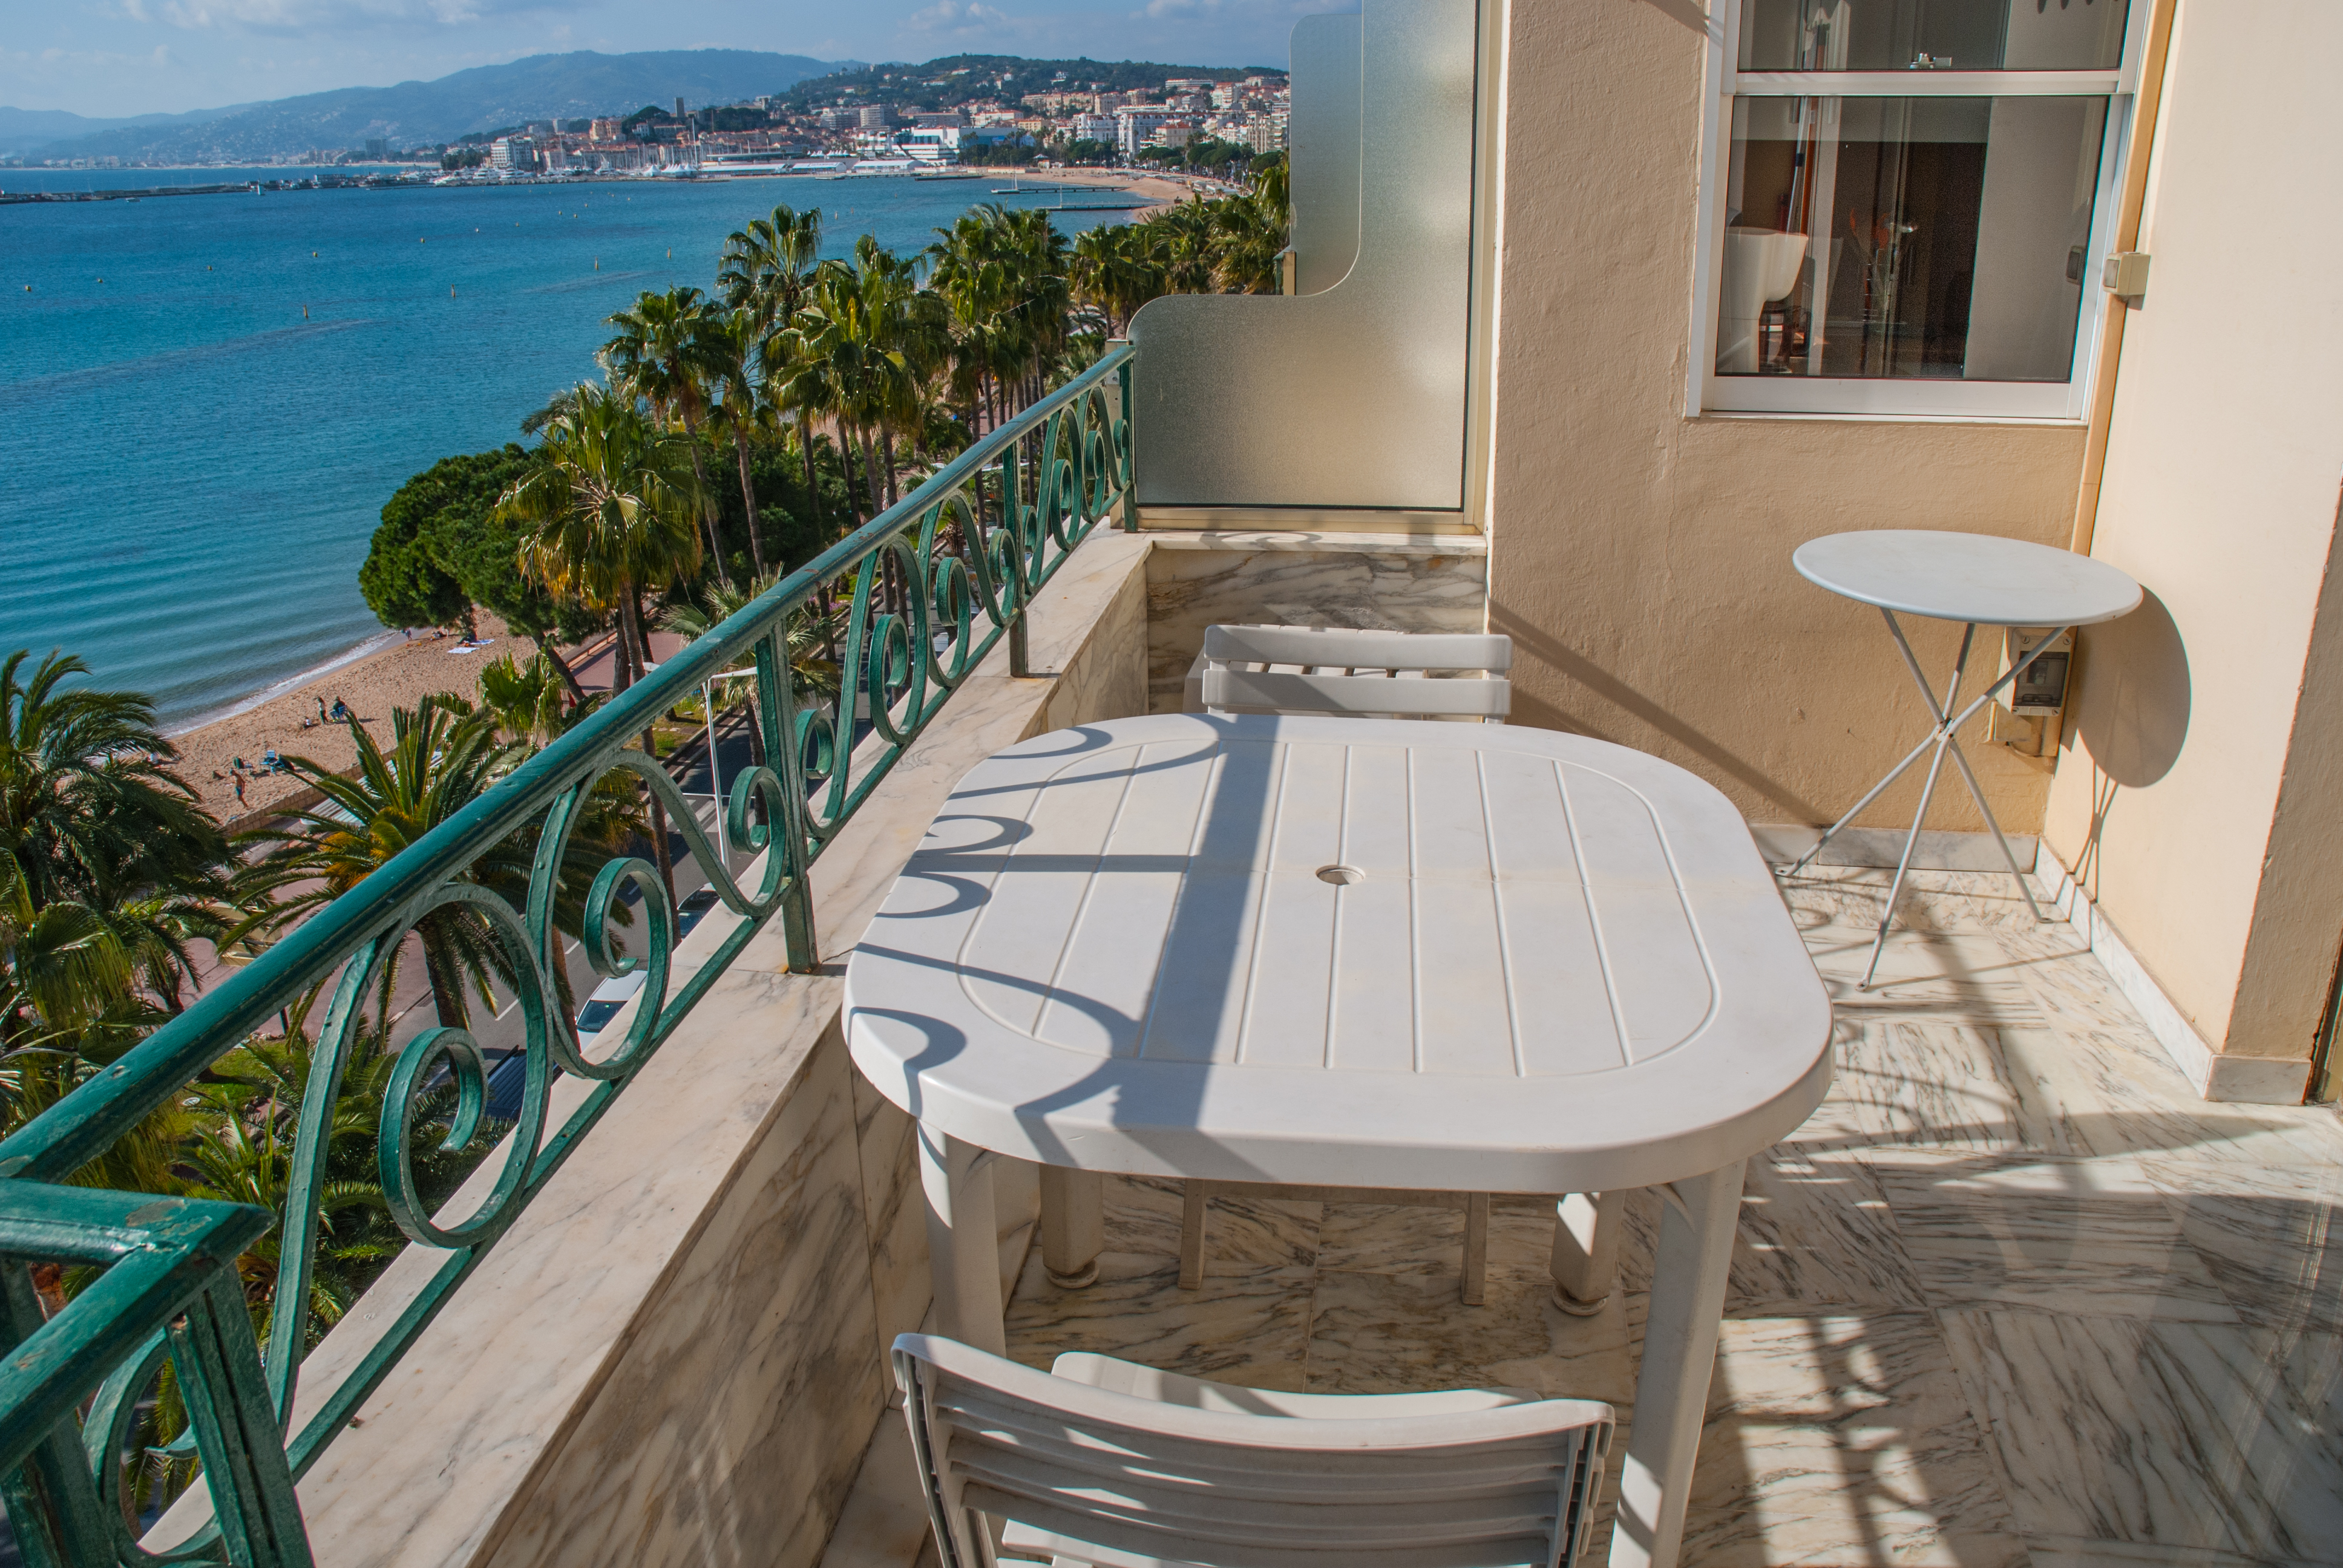 prise-de-vue-avec-table---view-from-the-balcony-with-table-2.jpg